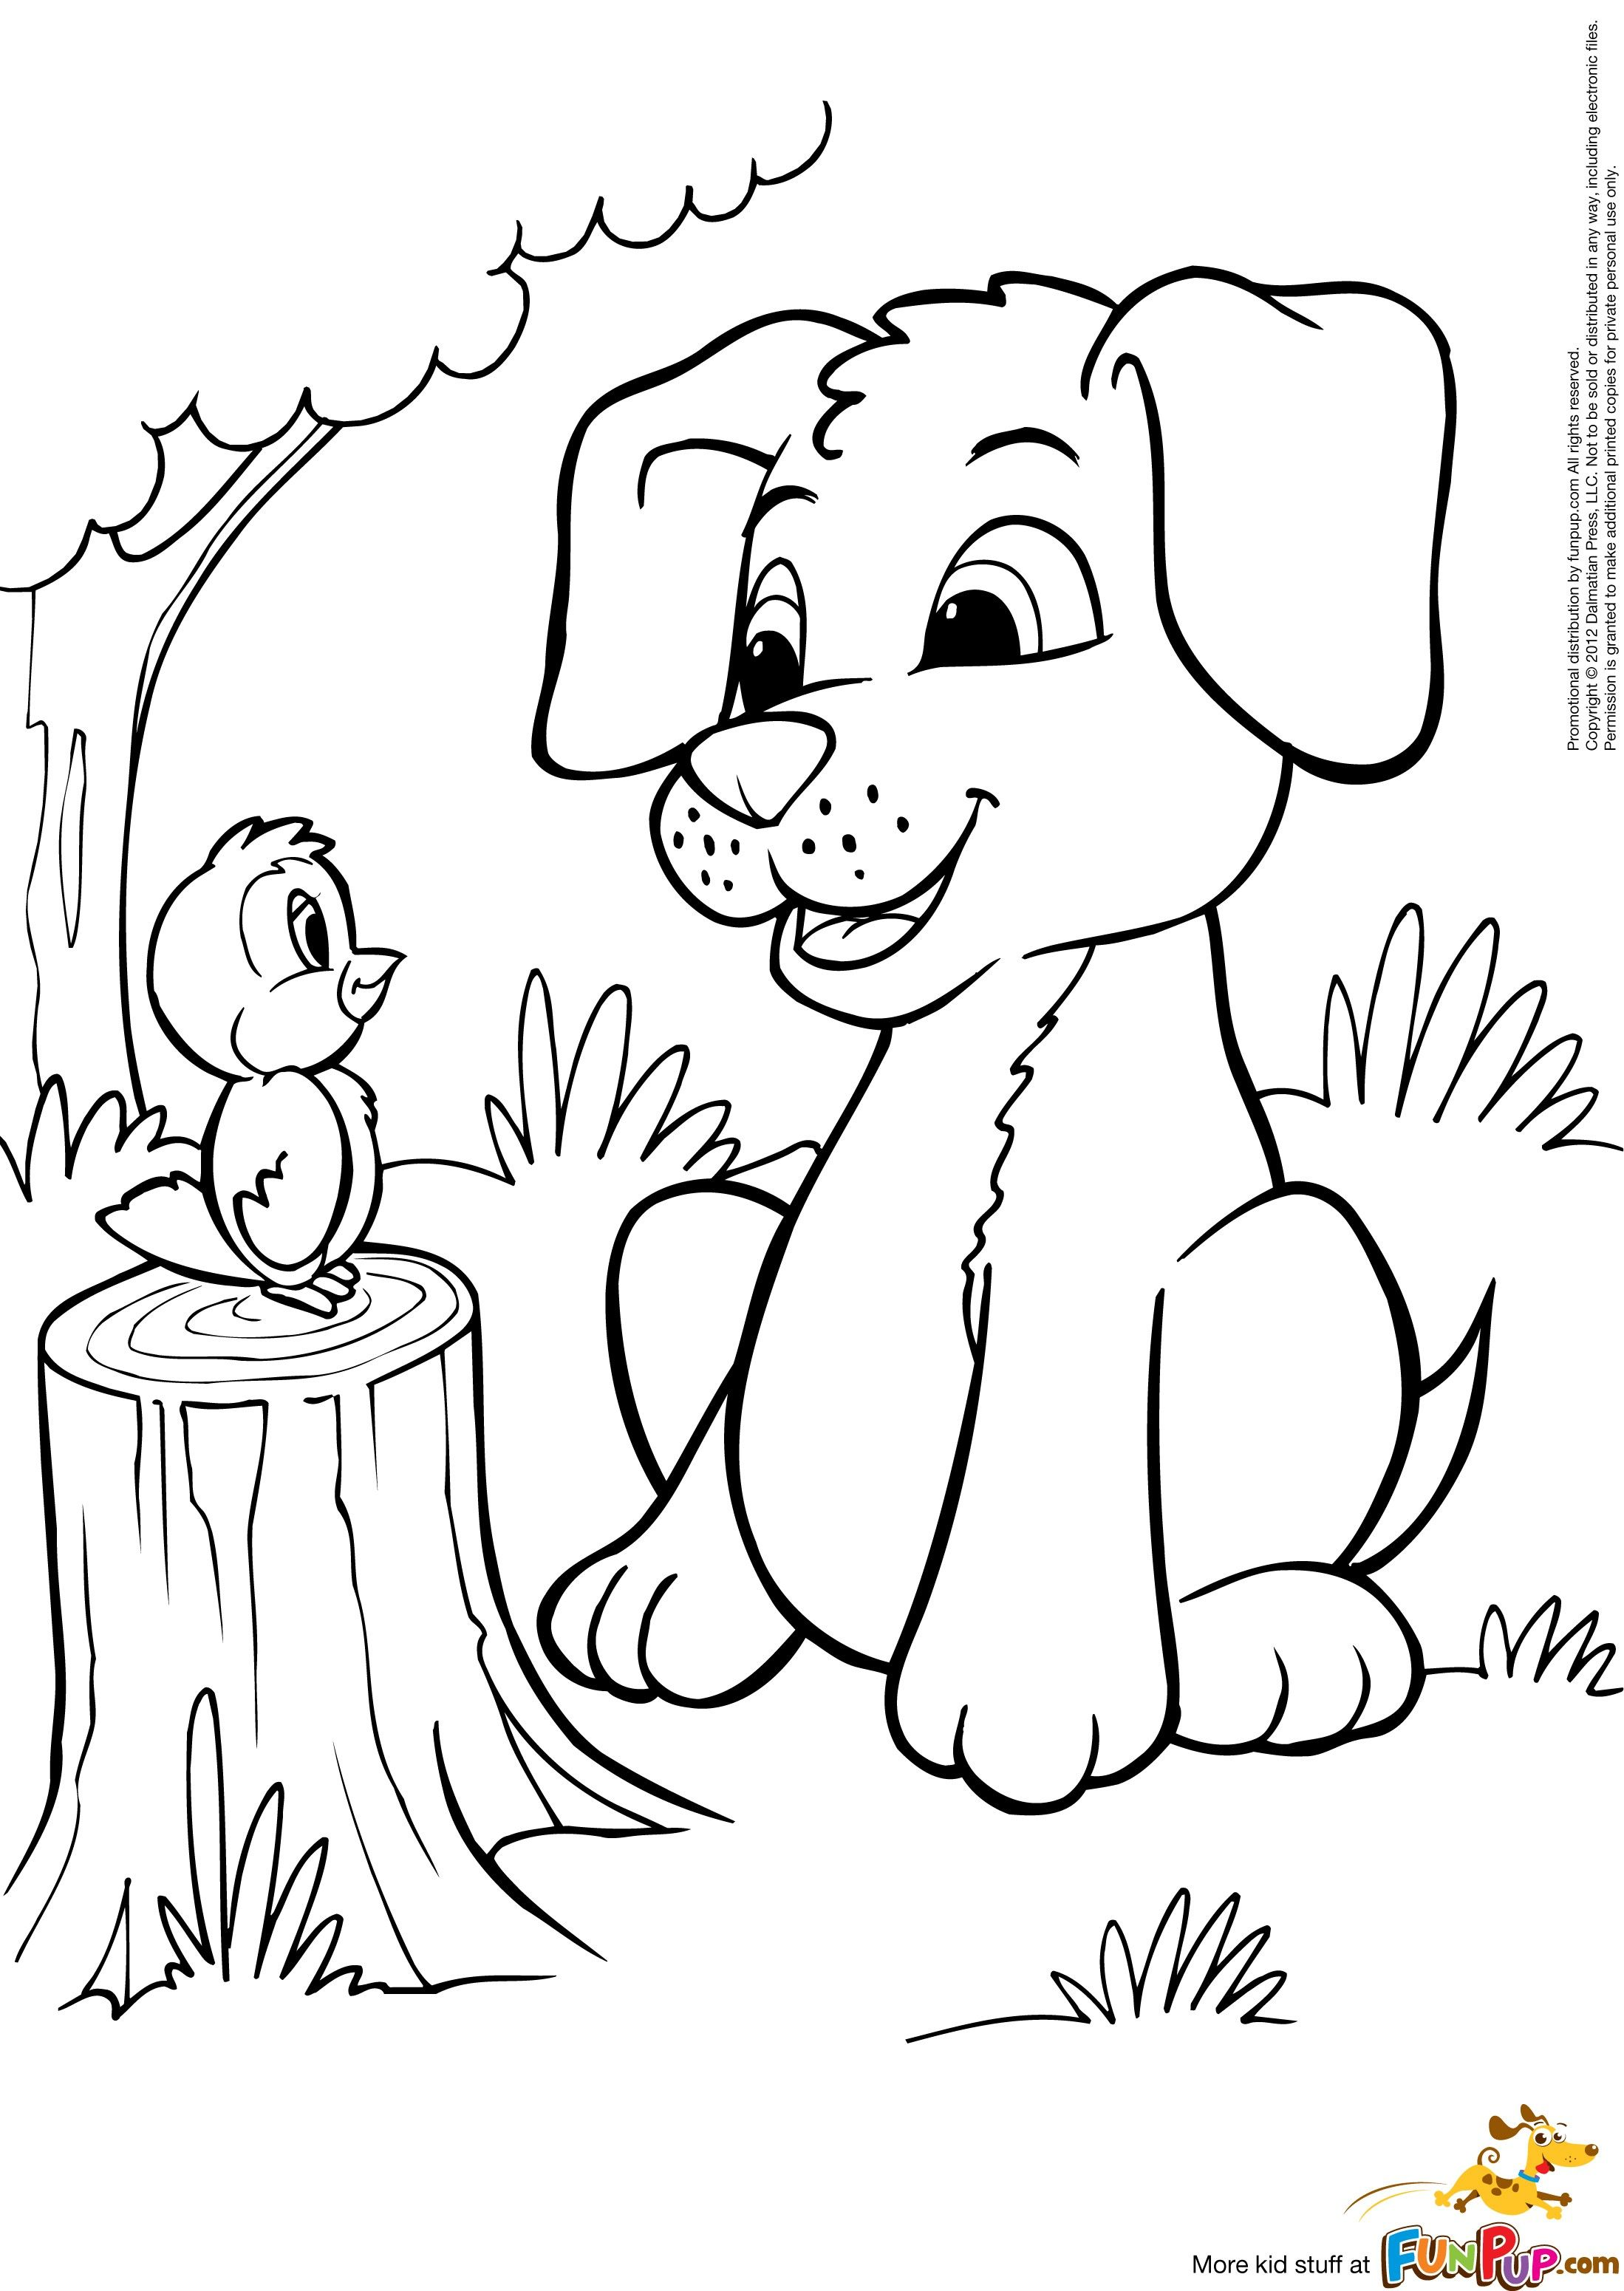 dog pictures to color free photo puppies colouring pages images bird coloring pictures to free dog color